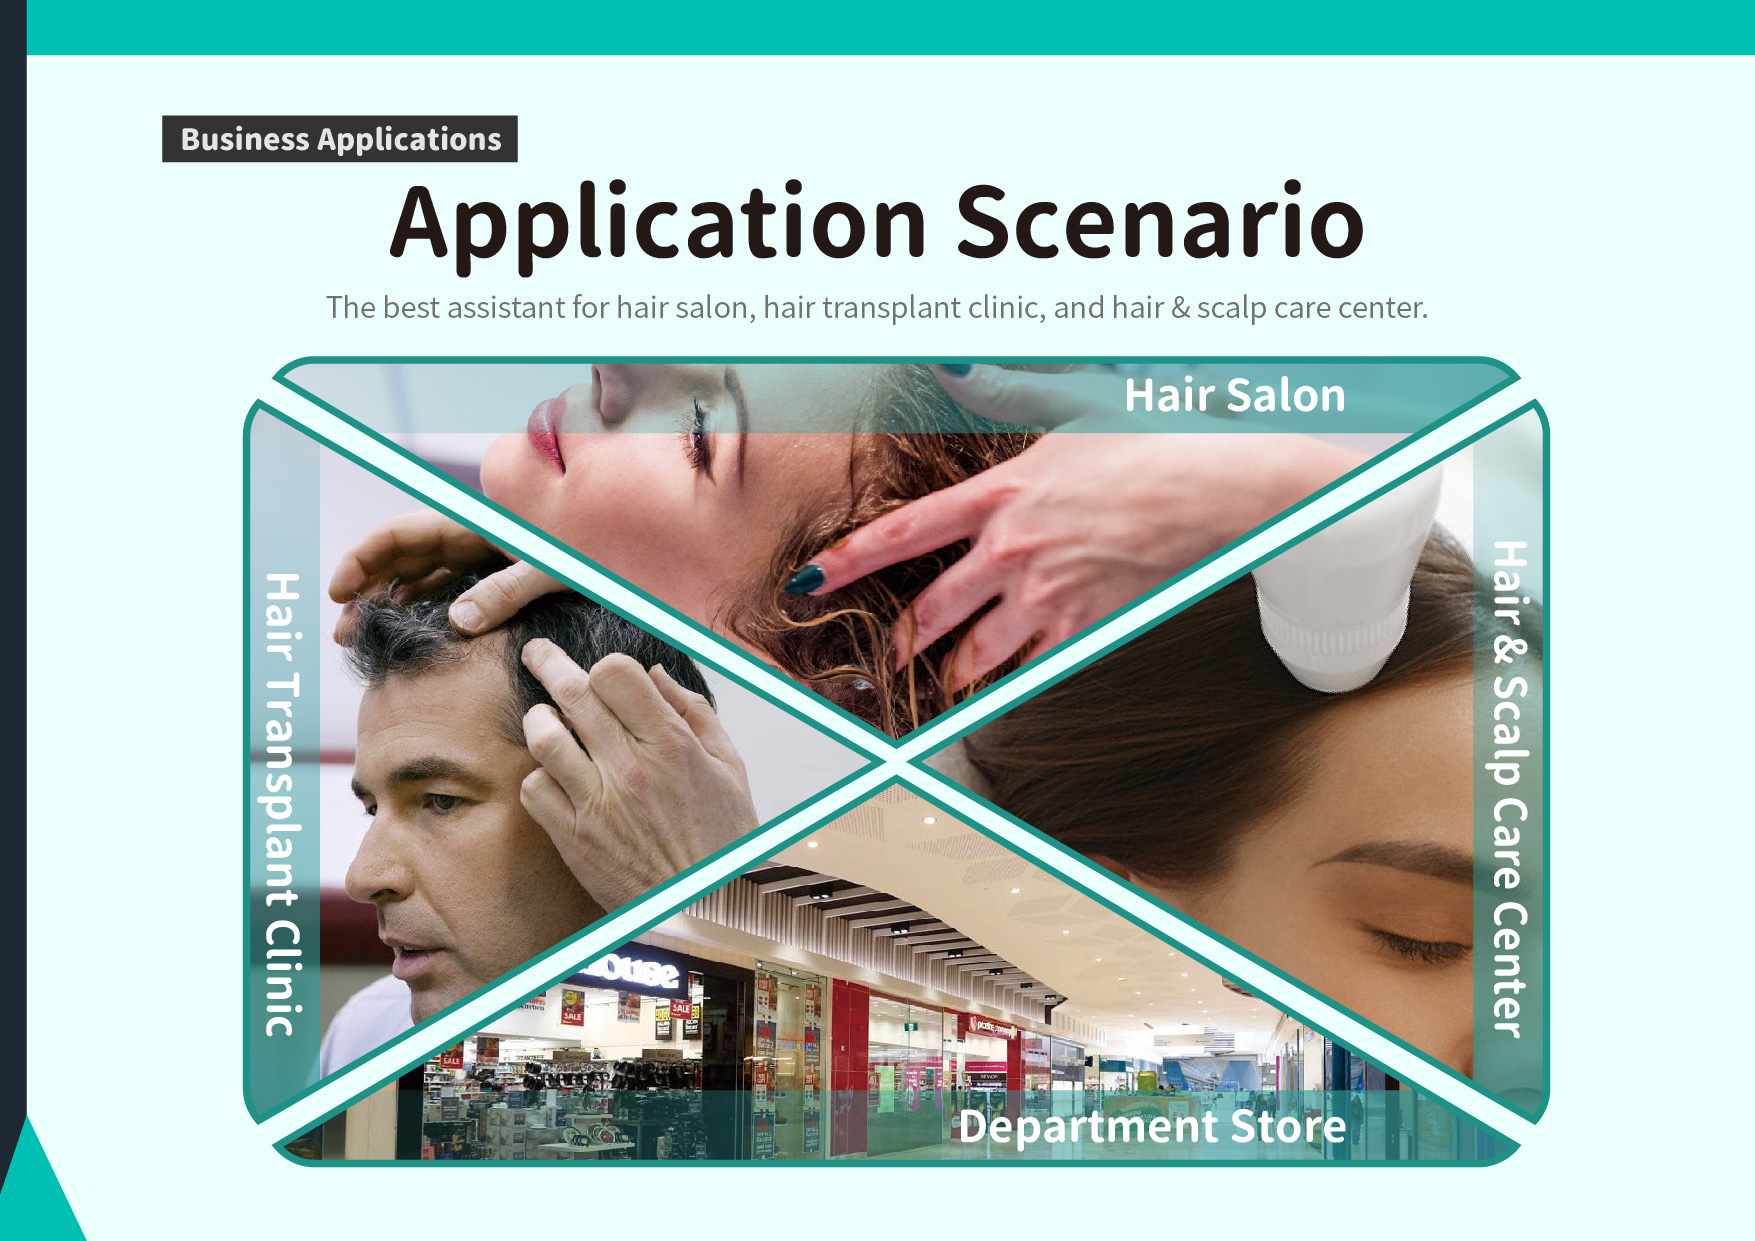 Application Scenario: The best assistant for hair salon, hair transplant clinic, and hair & scalp care center.